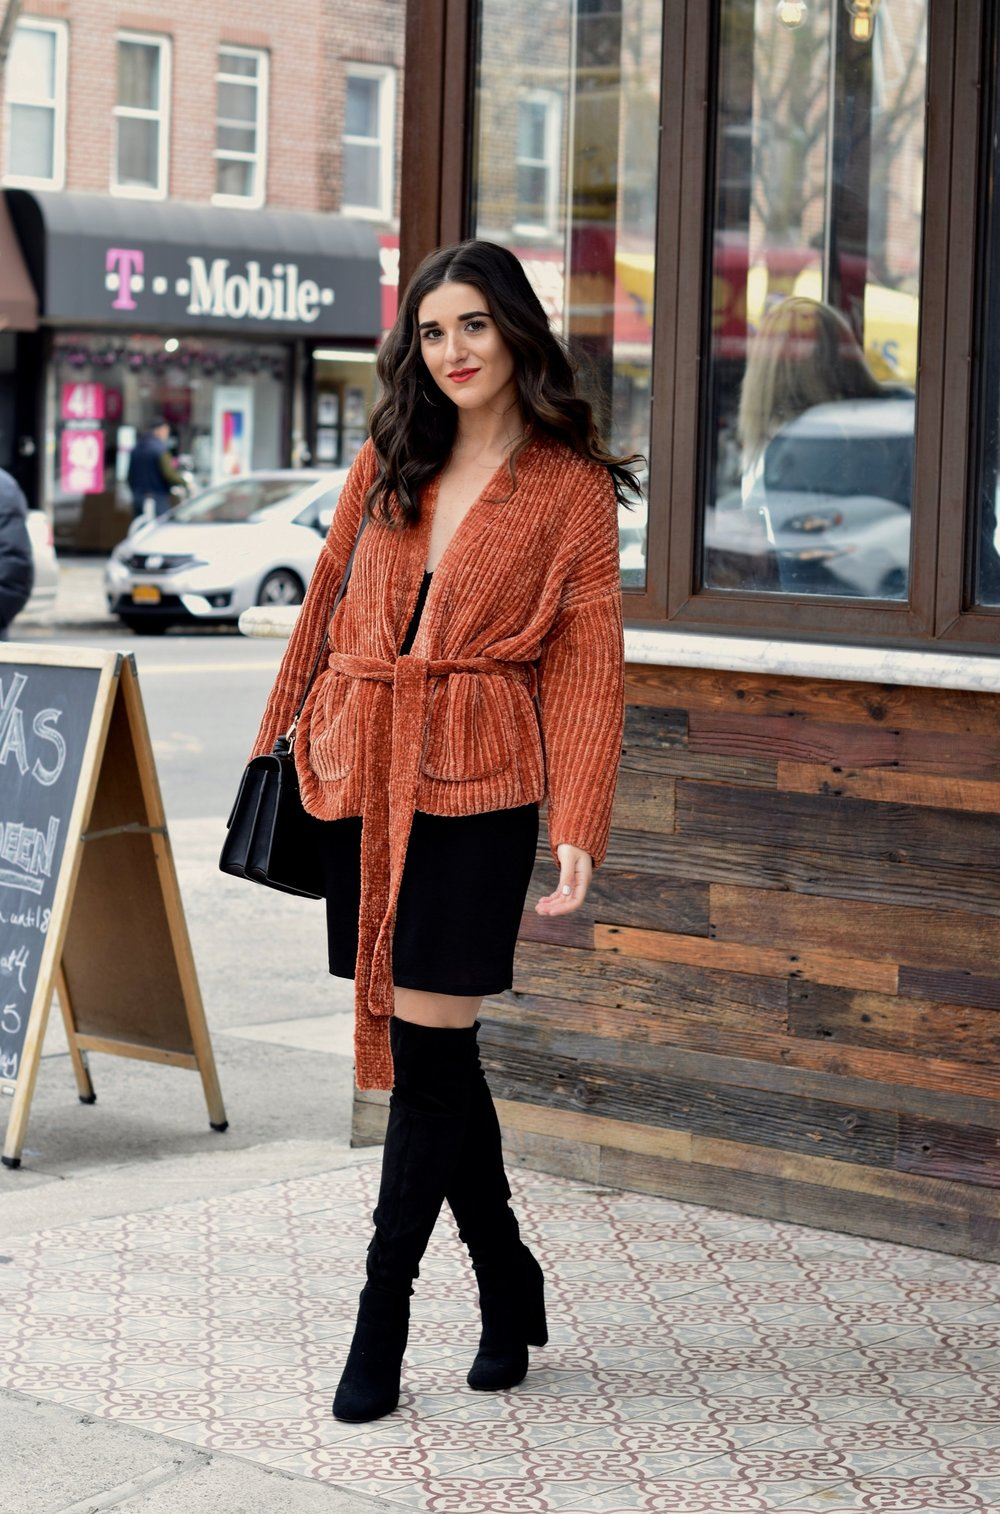 Orange Tie Sweater OTK Boots 10 Sweaters That Make The Perfect Holiday Gifts Esther Santer Fashion Blog NYC Street Style Blogger Outfit OOTD Trendy Urban Outfitters Girl Women Black Over The Knee Boots Slip Dress Beautiful New York City Cozy OOTD.jpg